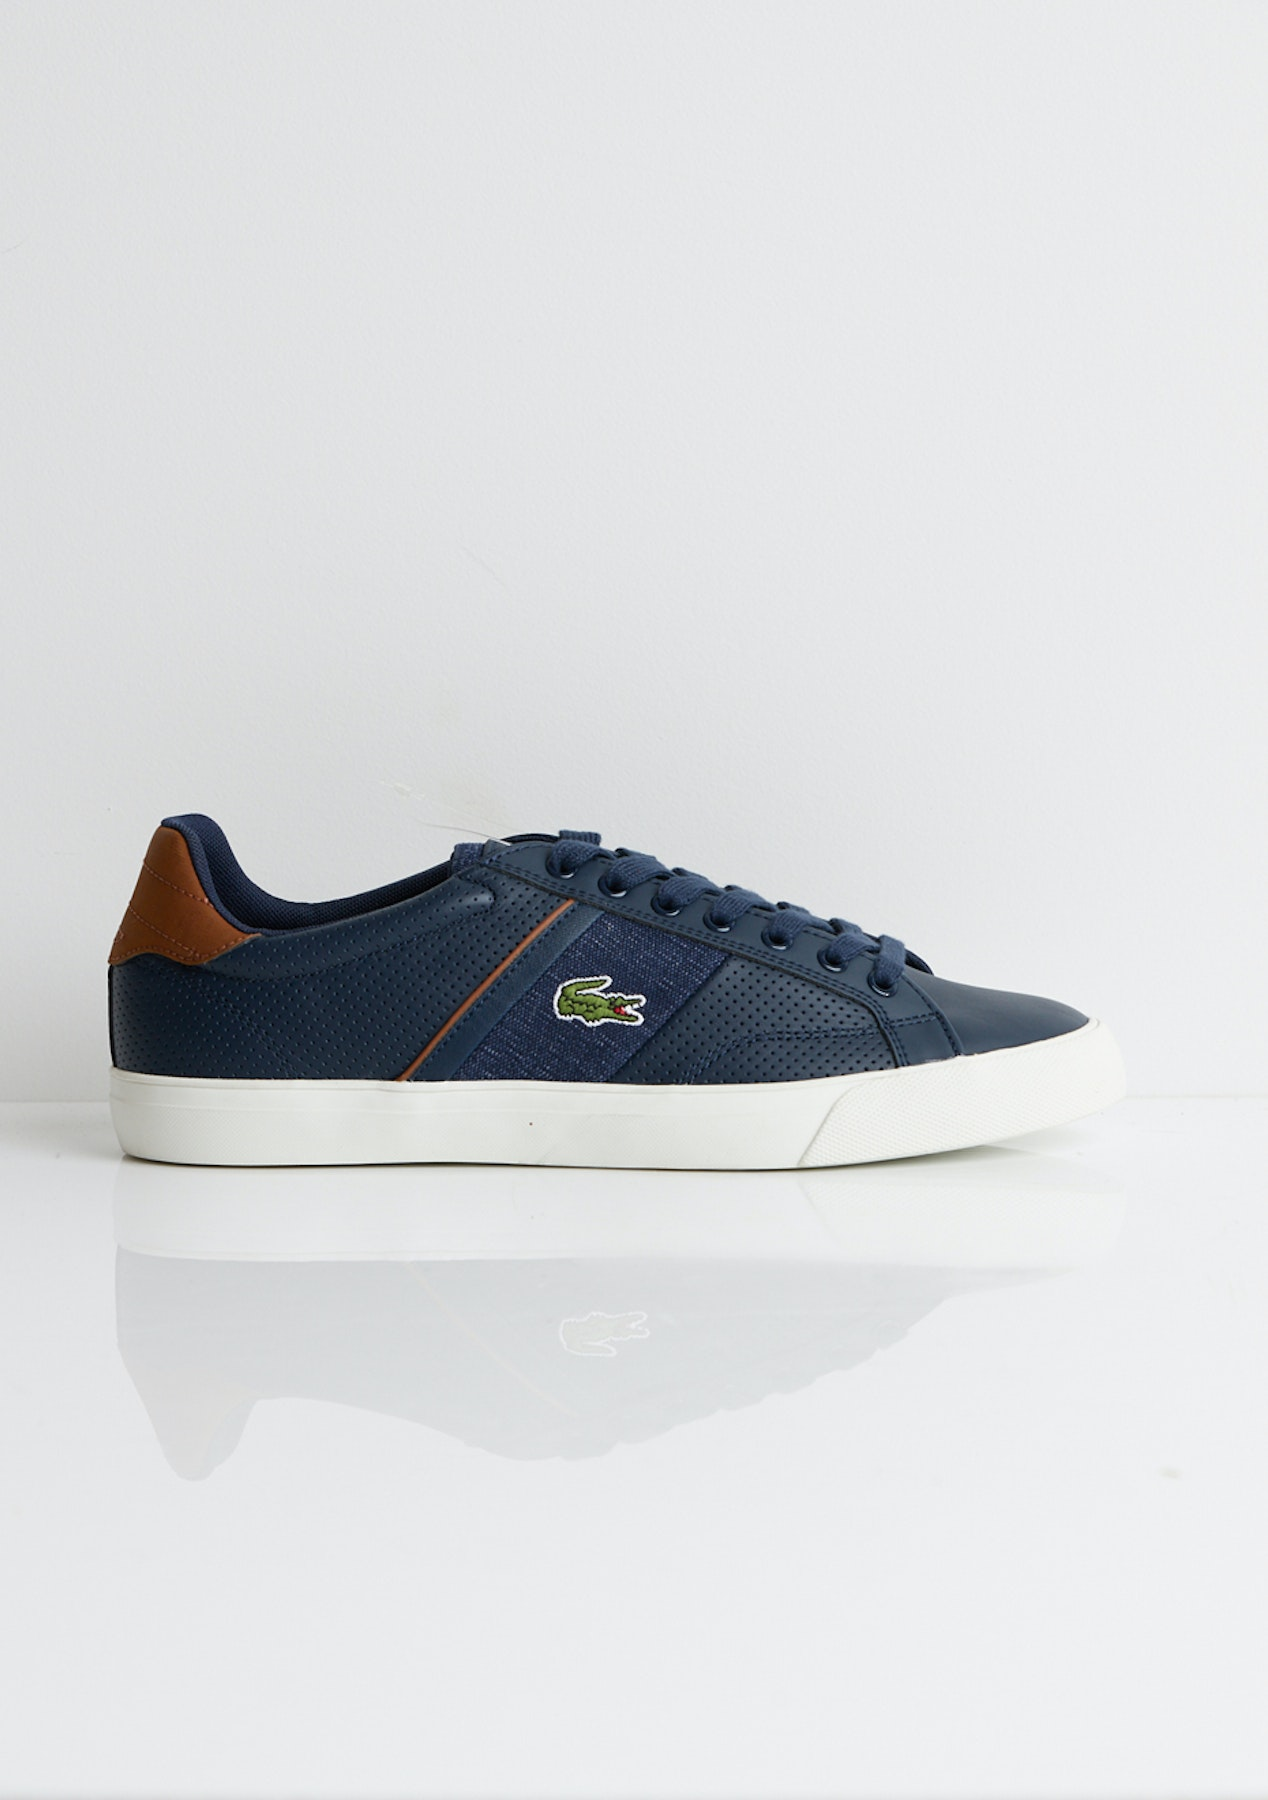 a628175fe204 Lacoste Shoes - Mens - 68 - All Shoes  60 - Onceit